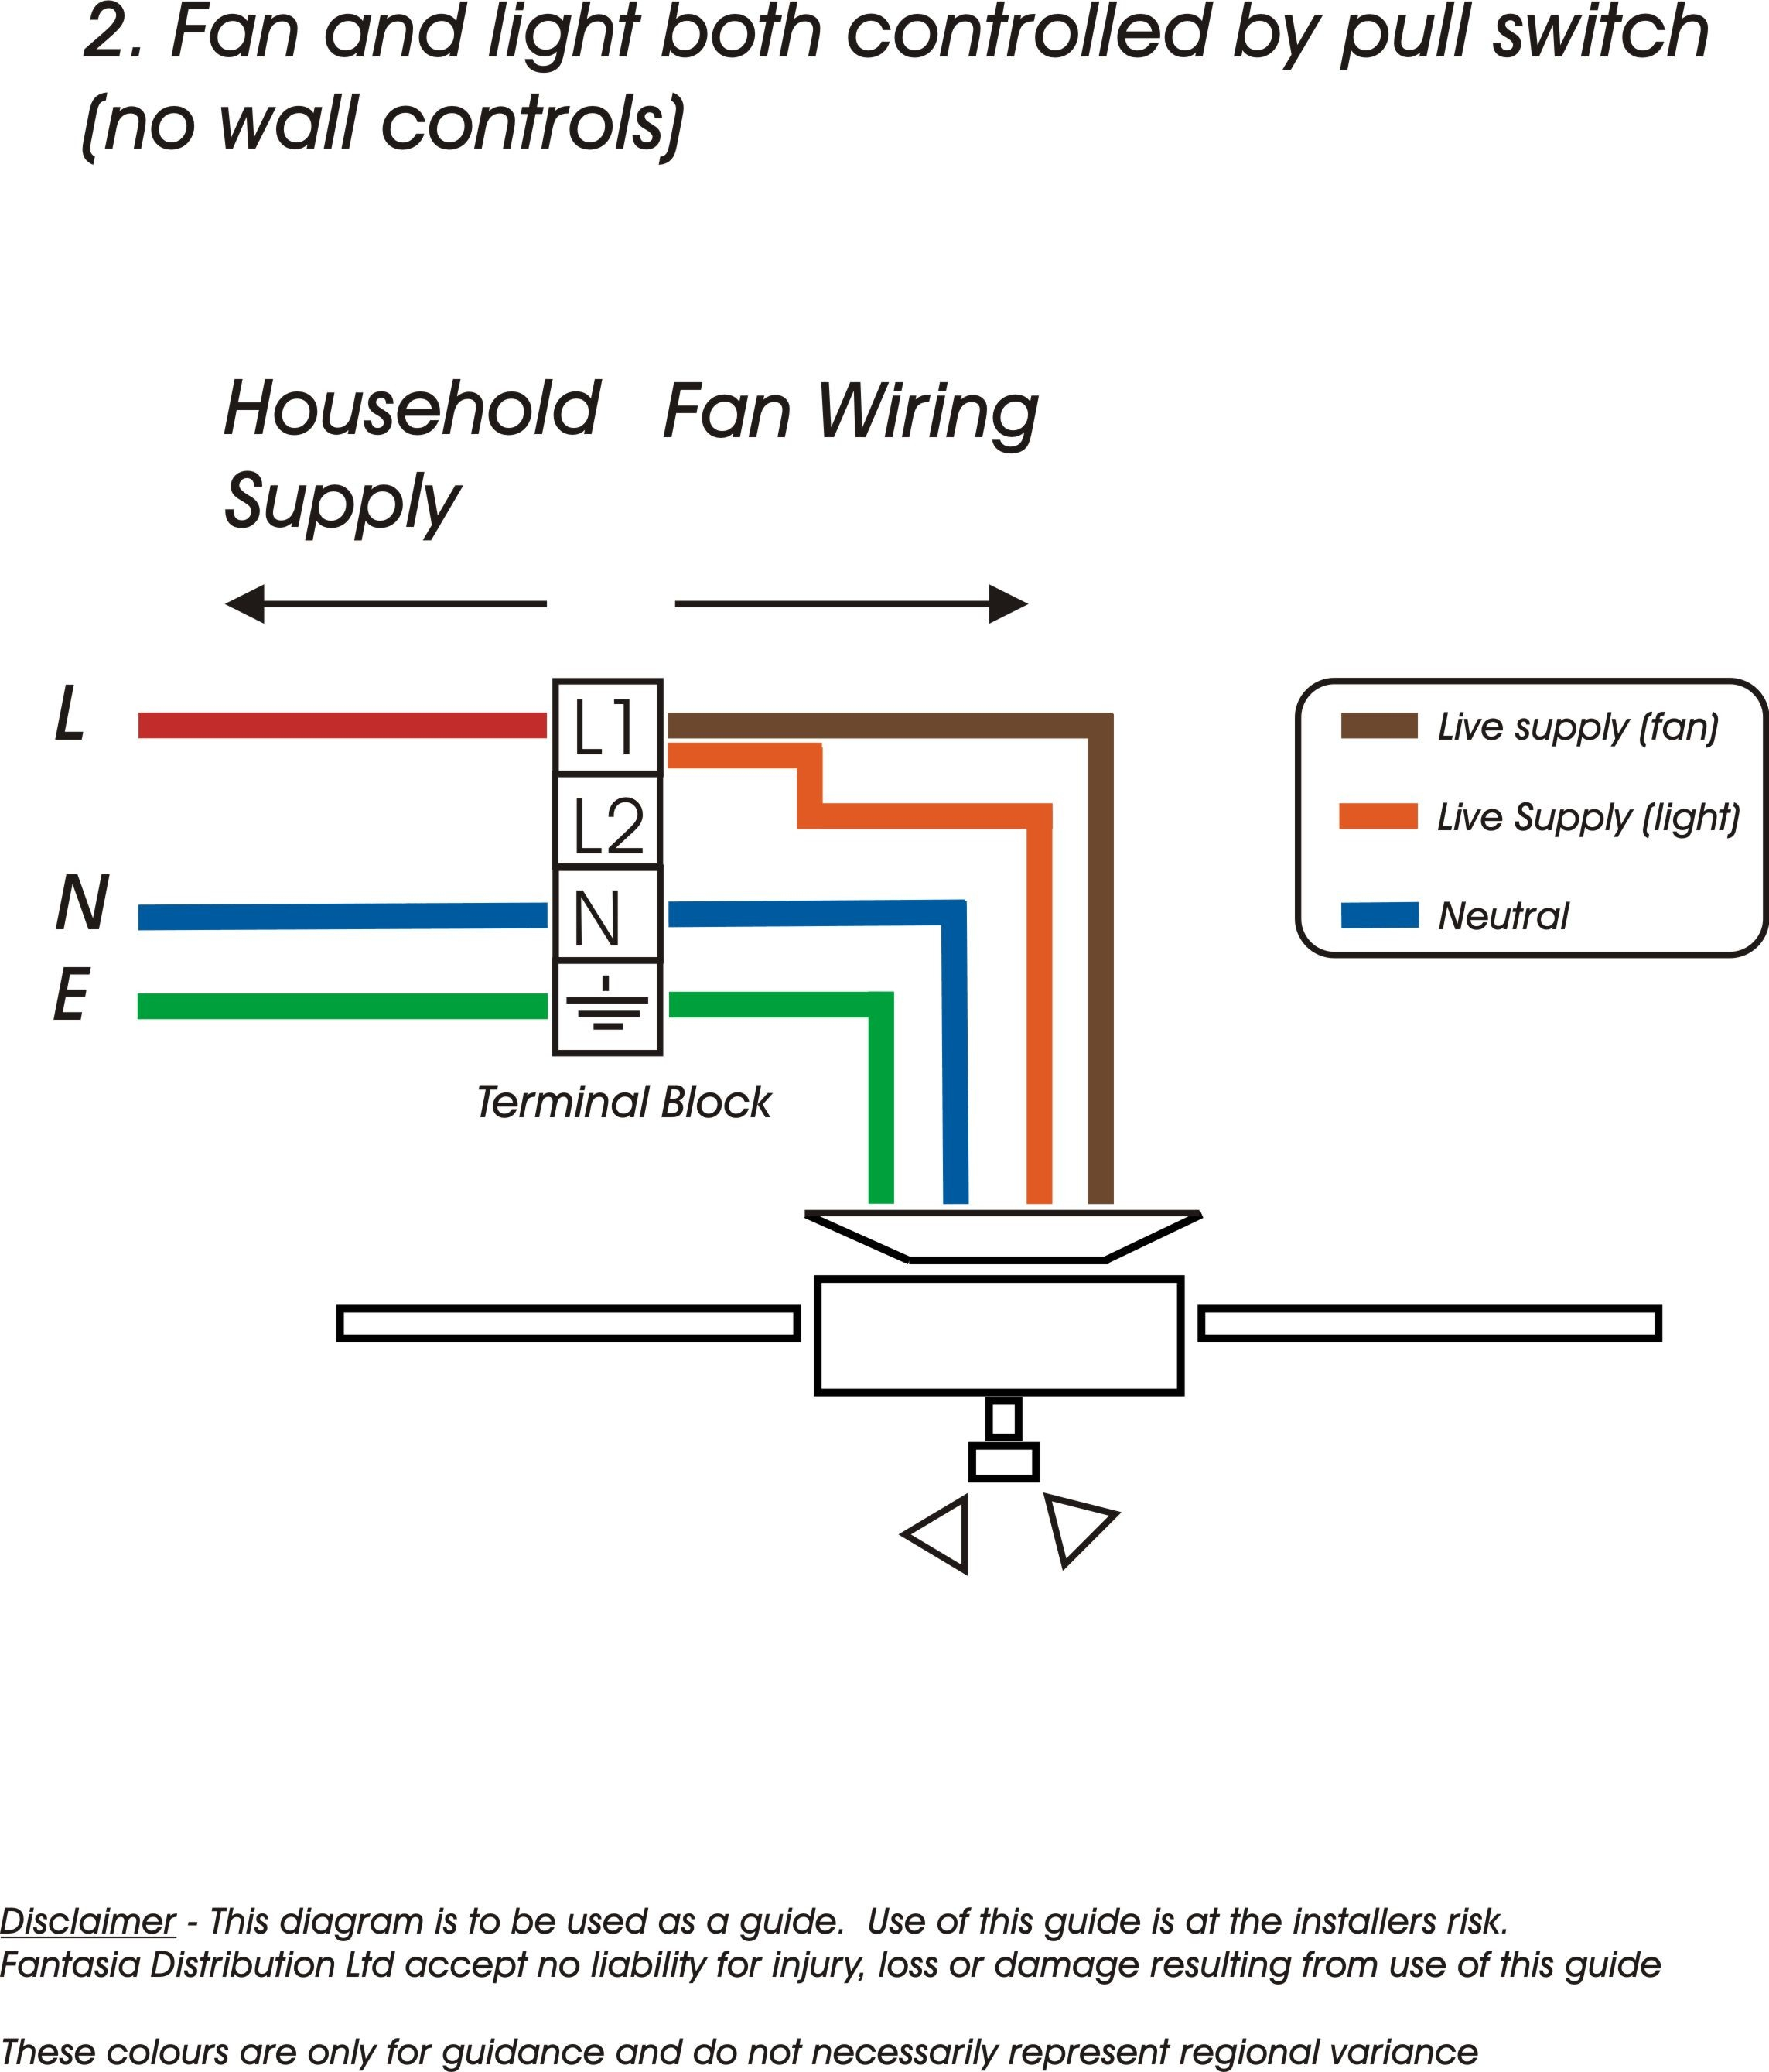 canarm exhaust fan wiring diagram Collection-Wiring Diagram for Canarm Exhaust Fan Fresh Canarm Exhaust Fan Wiring Diagram • Exhaust Fans Ideas 15-k